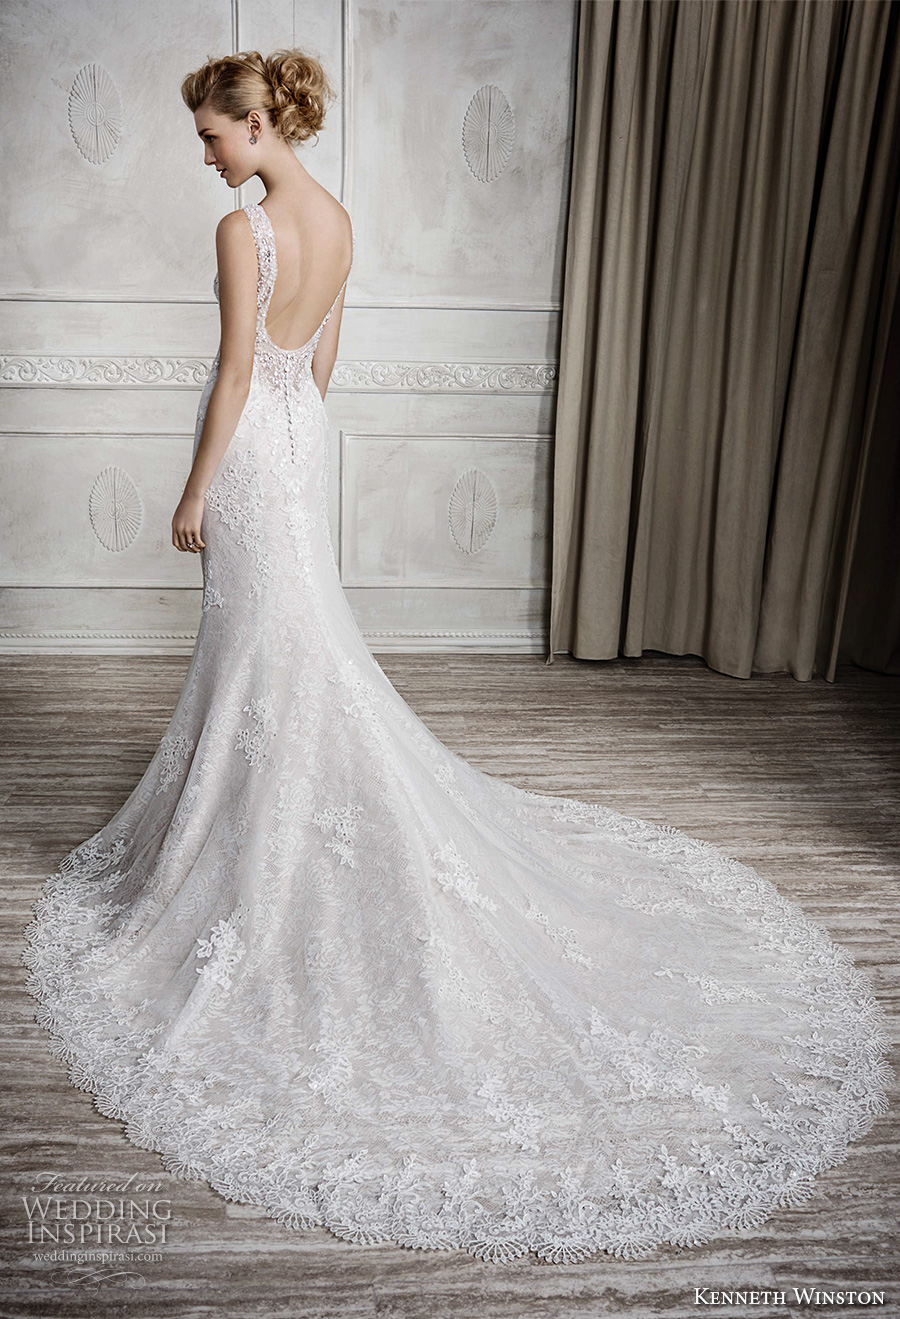 kenneth winston fall 2016 bridal sleeveless embroidered strap sweetheart neckline full embellishment beautiful elegant fit and flare wedding dress low back long train (1670) bv